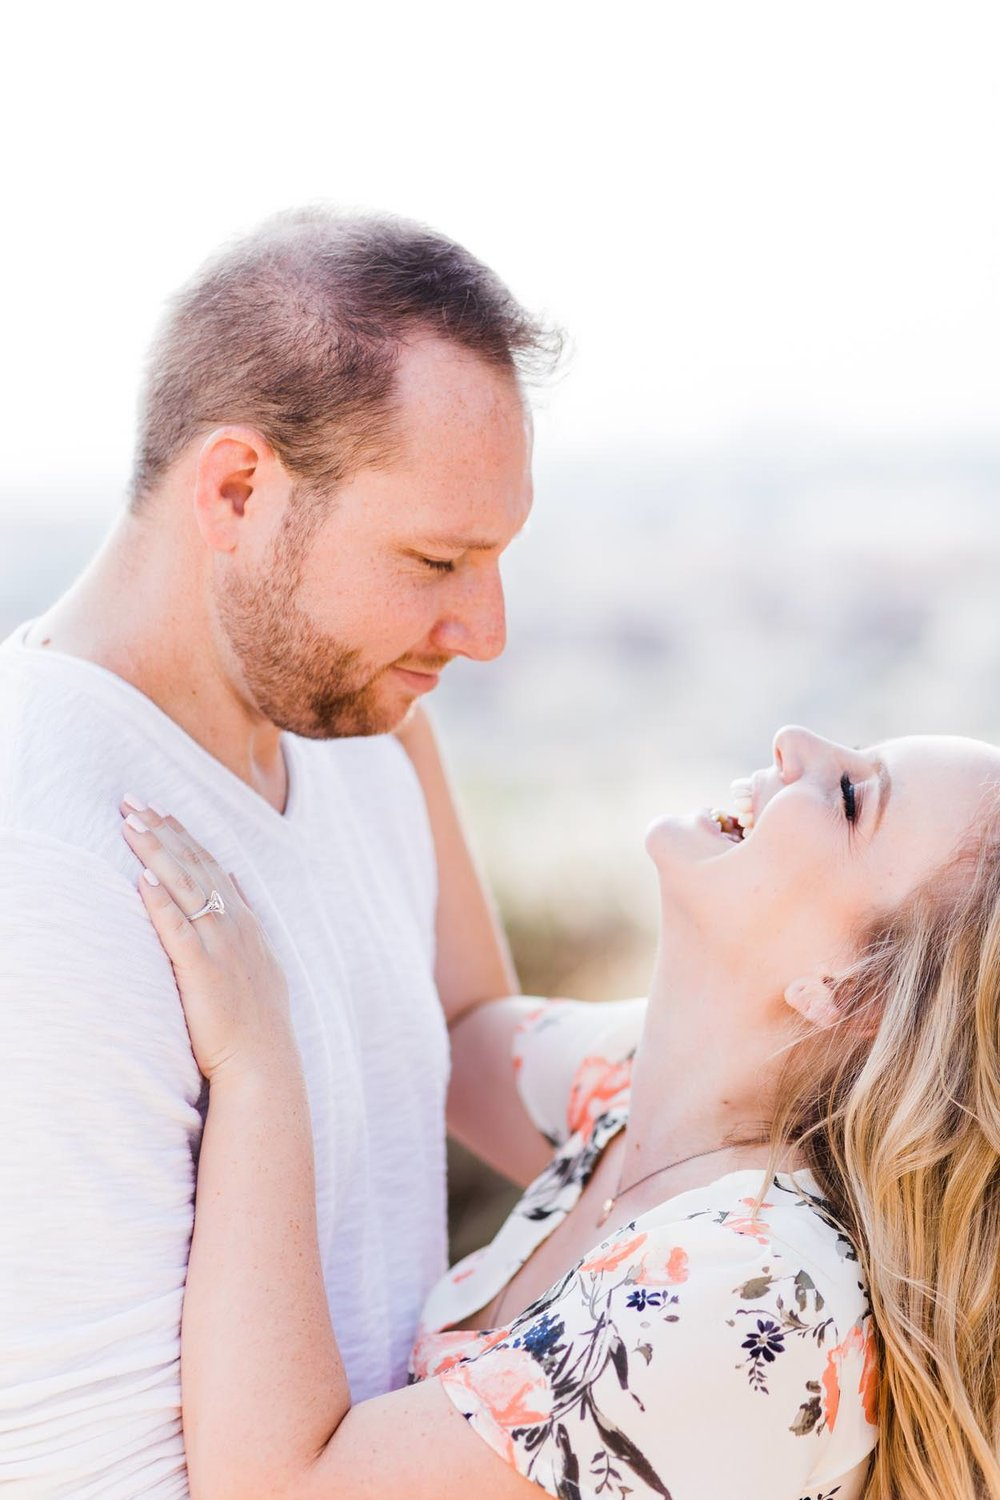 Loyola Marymount University in Los Angeles Engagement Photography Session from South Bay family and wedding portrait photography business Daniel Doty Photography.